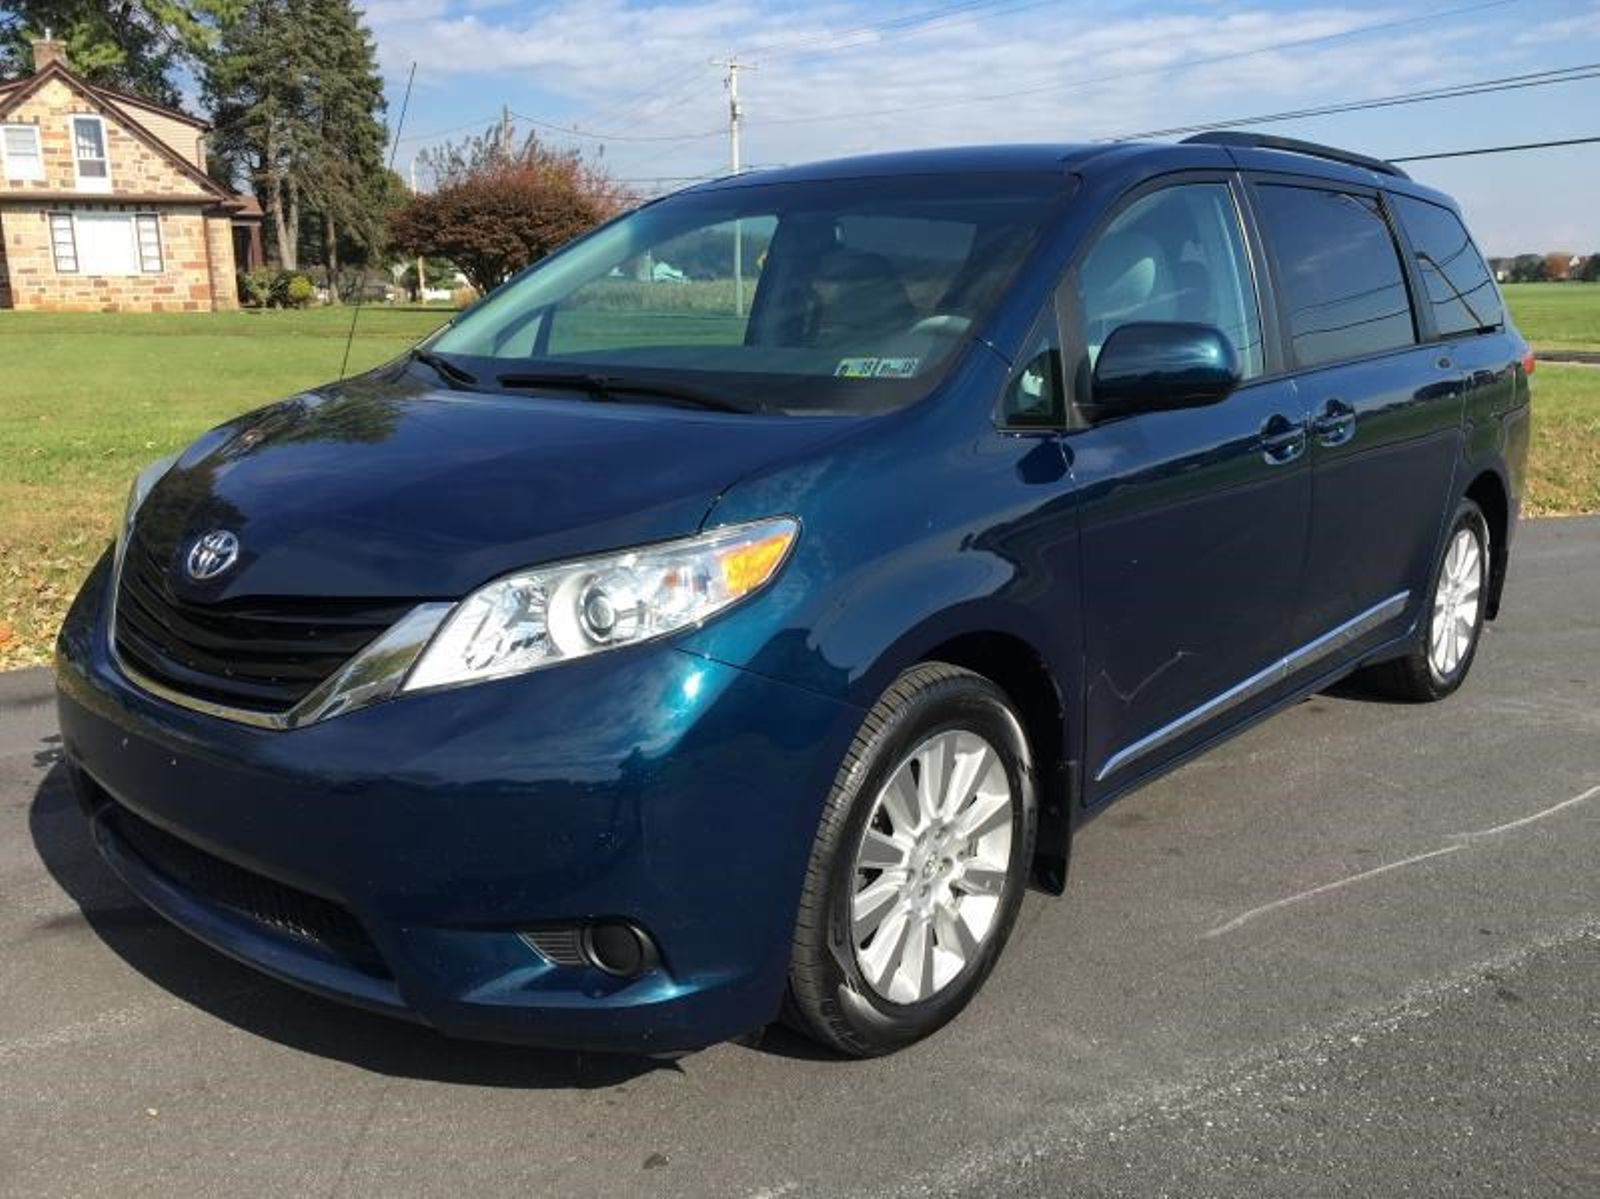 minivan sienna toyota view front van drive wheel reviews features side passenger photos base exterior price